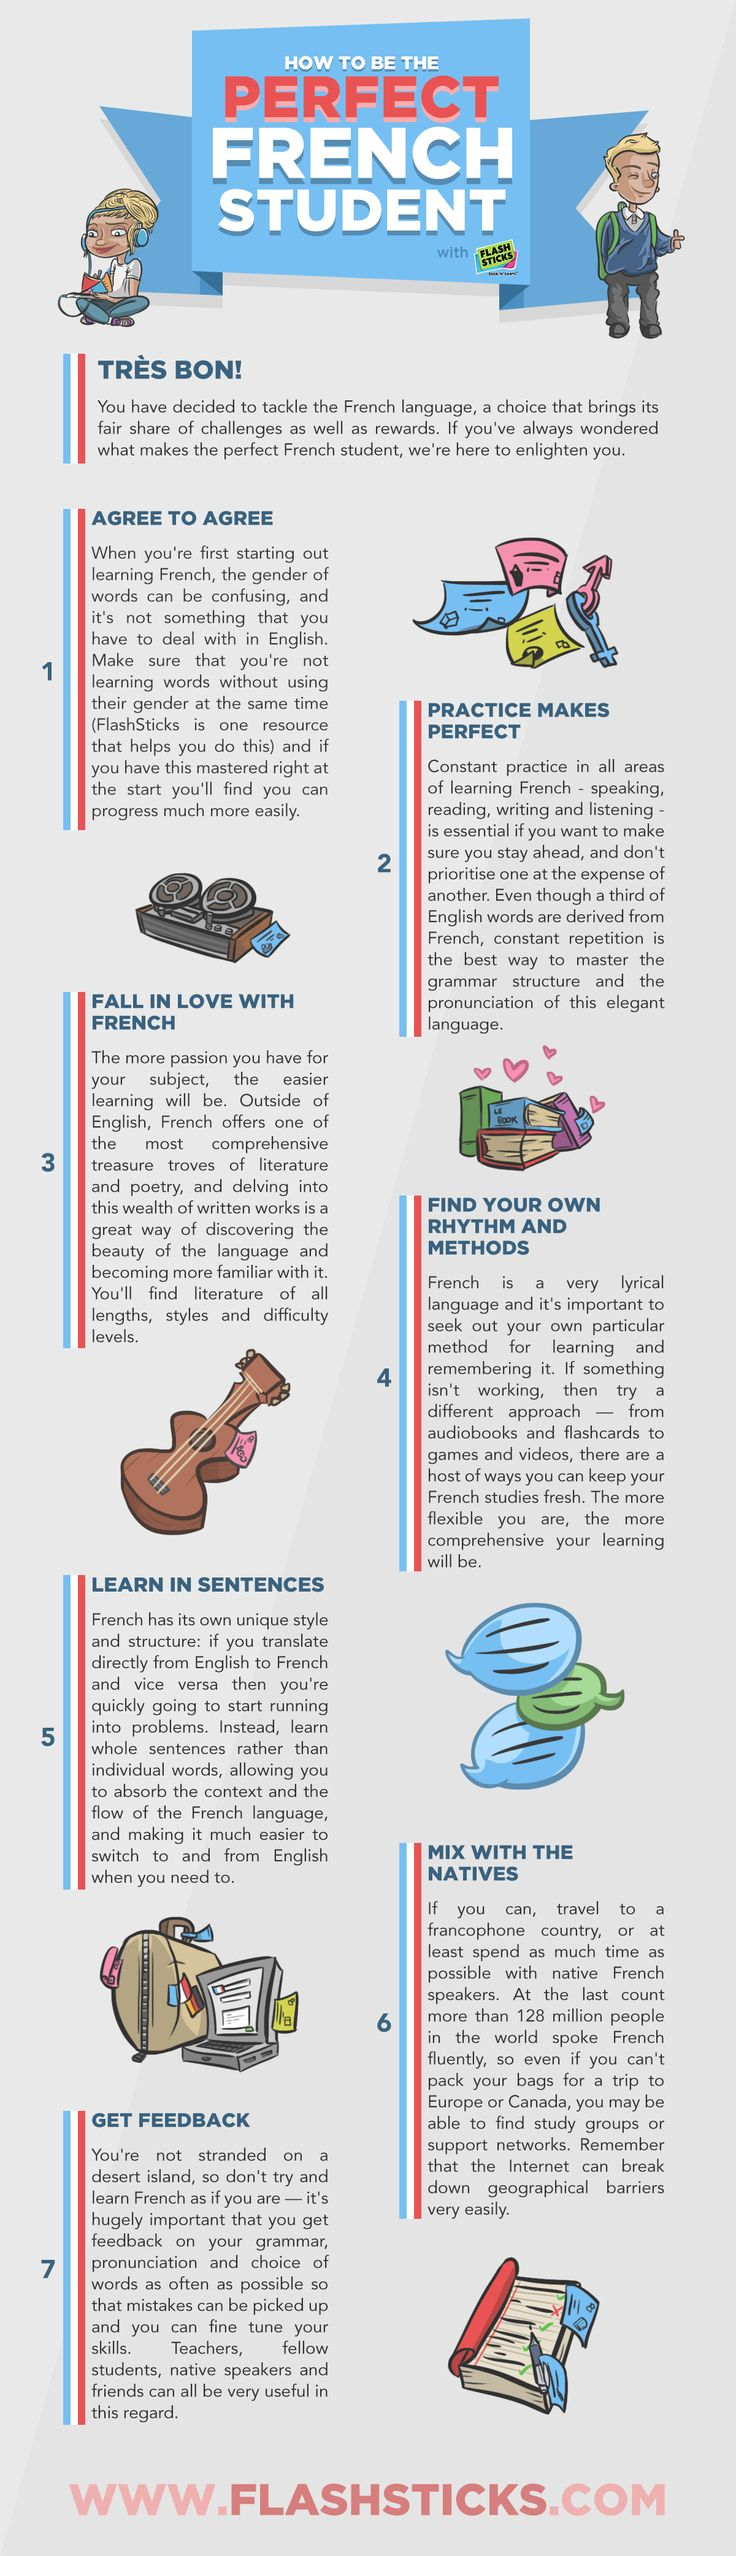 How to Learn French Fast: 10 Steps (with Pictures) - wikiHow